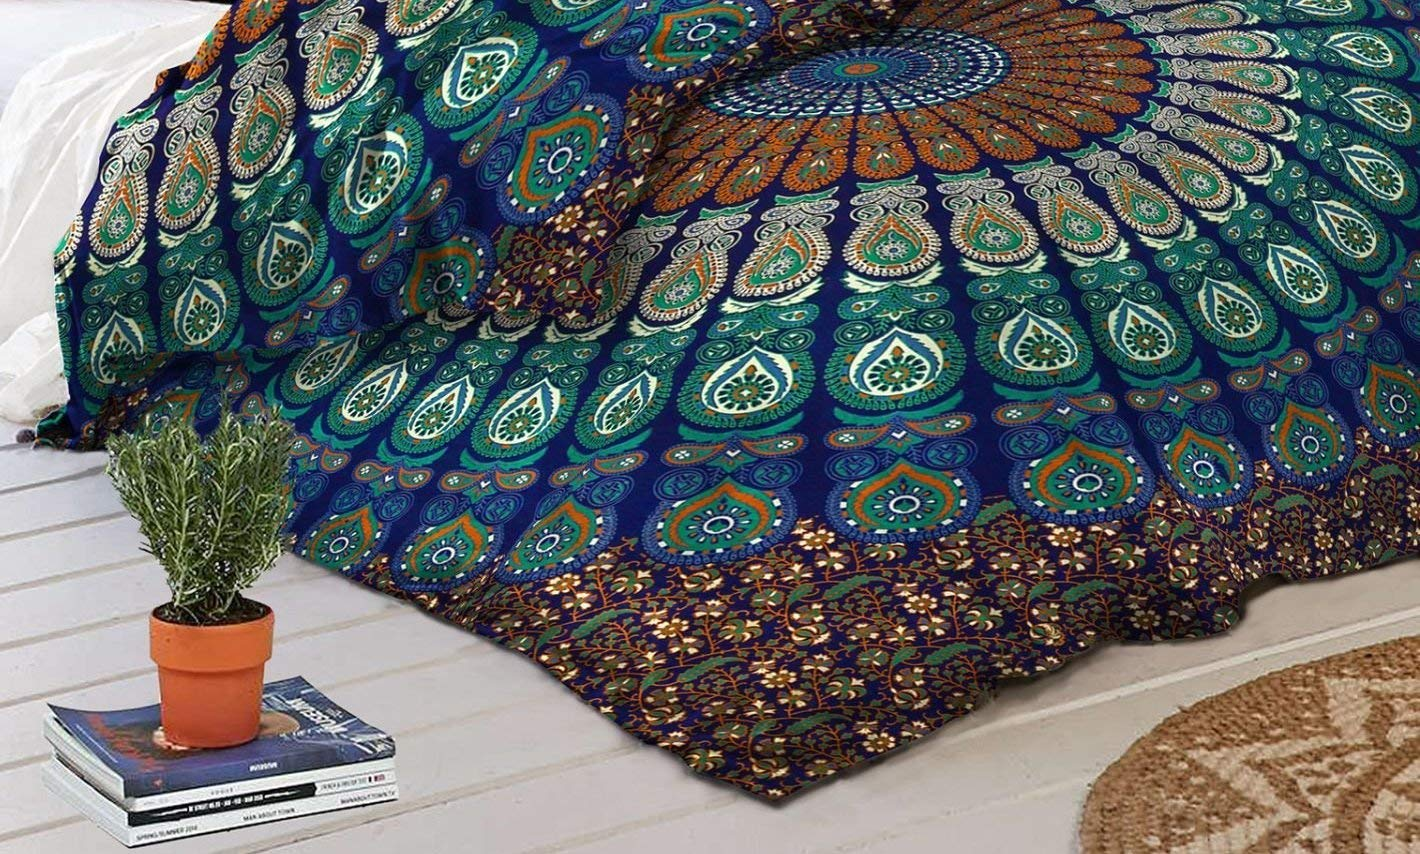 Indian Bedcover Duvet Cover Large Hippie Bedcover 90x85 inch Black and White Duvet Covers